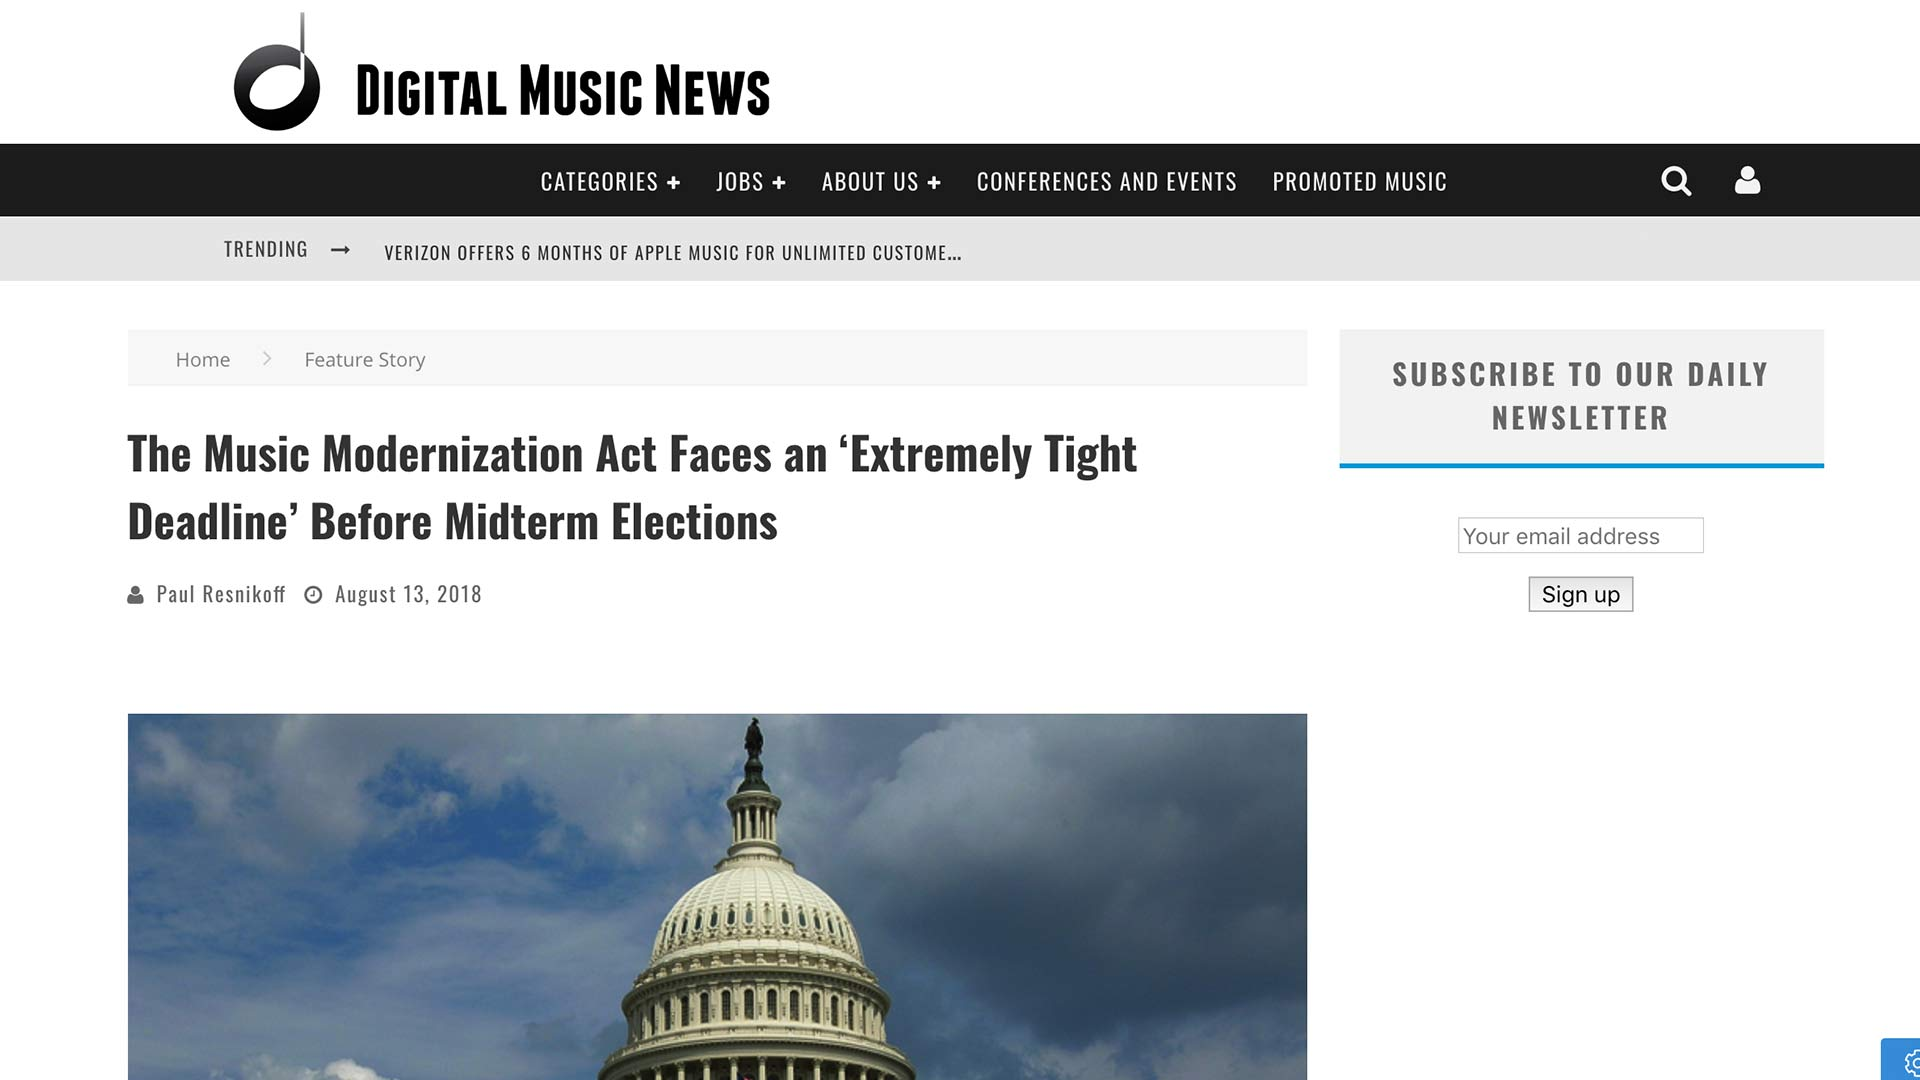 Fairness Rocks News The Music Modernization Act Faces an 'Extremely Tight Deadline' Before Midterm Elections